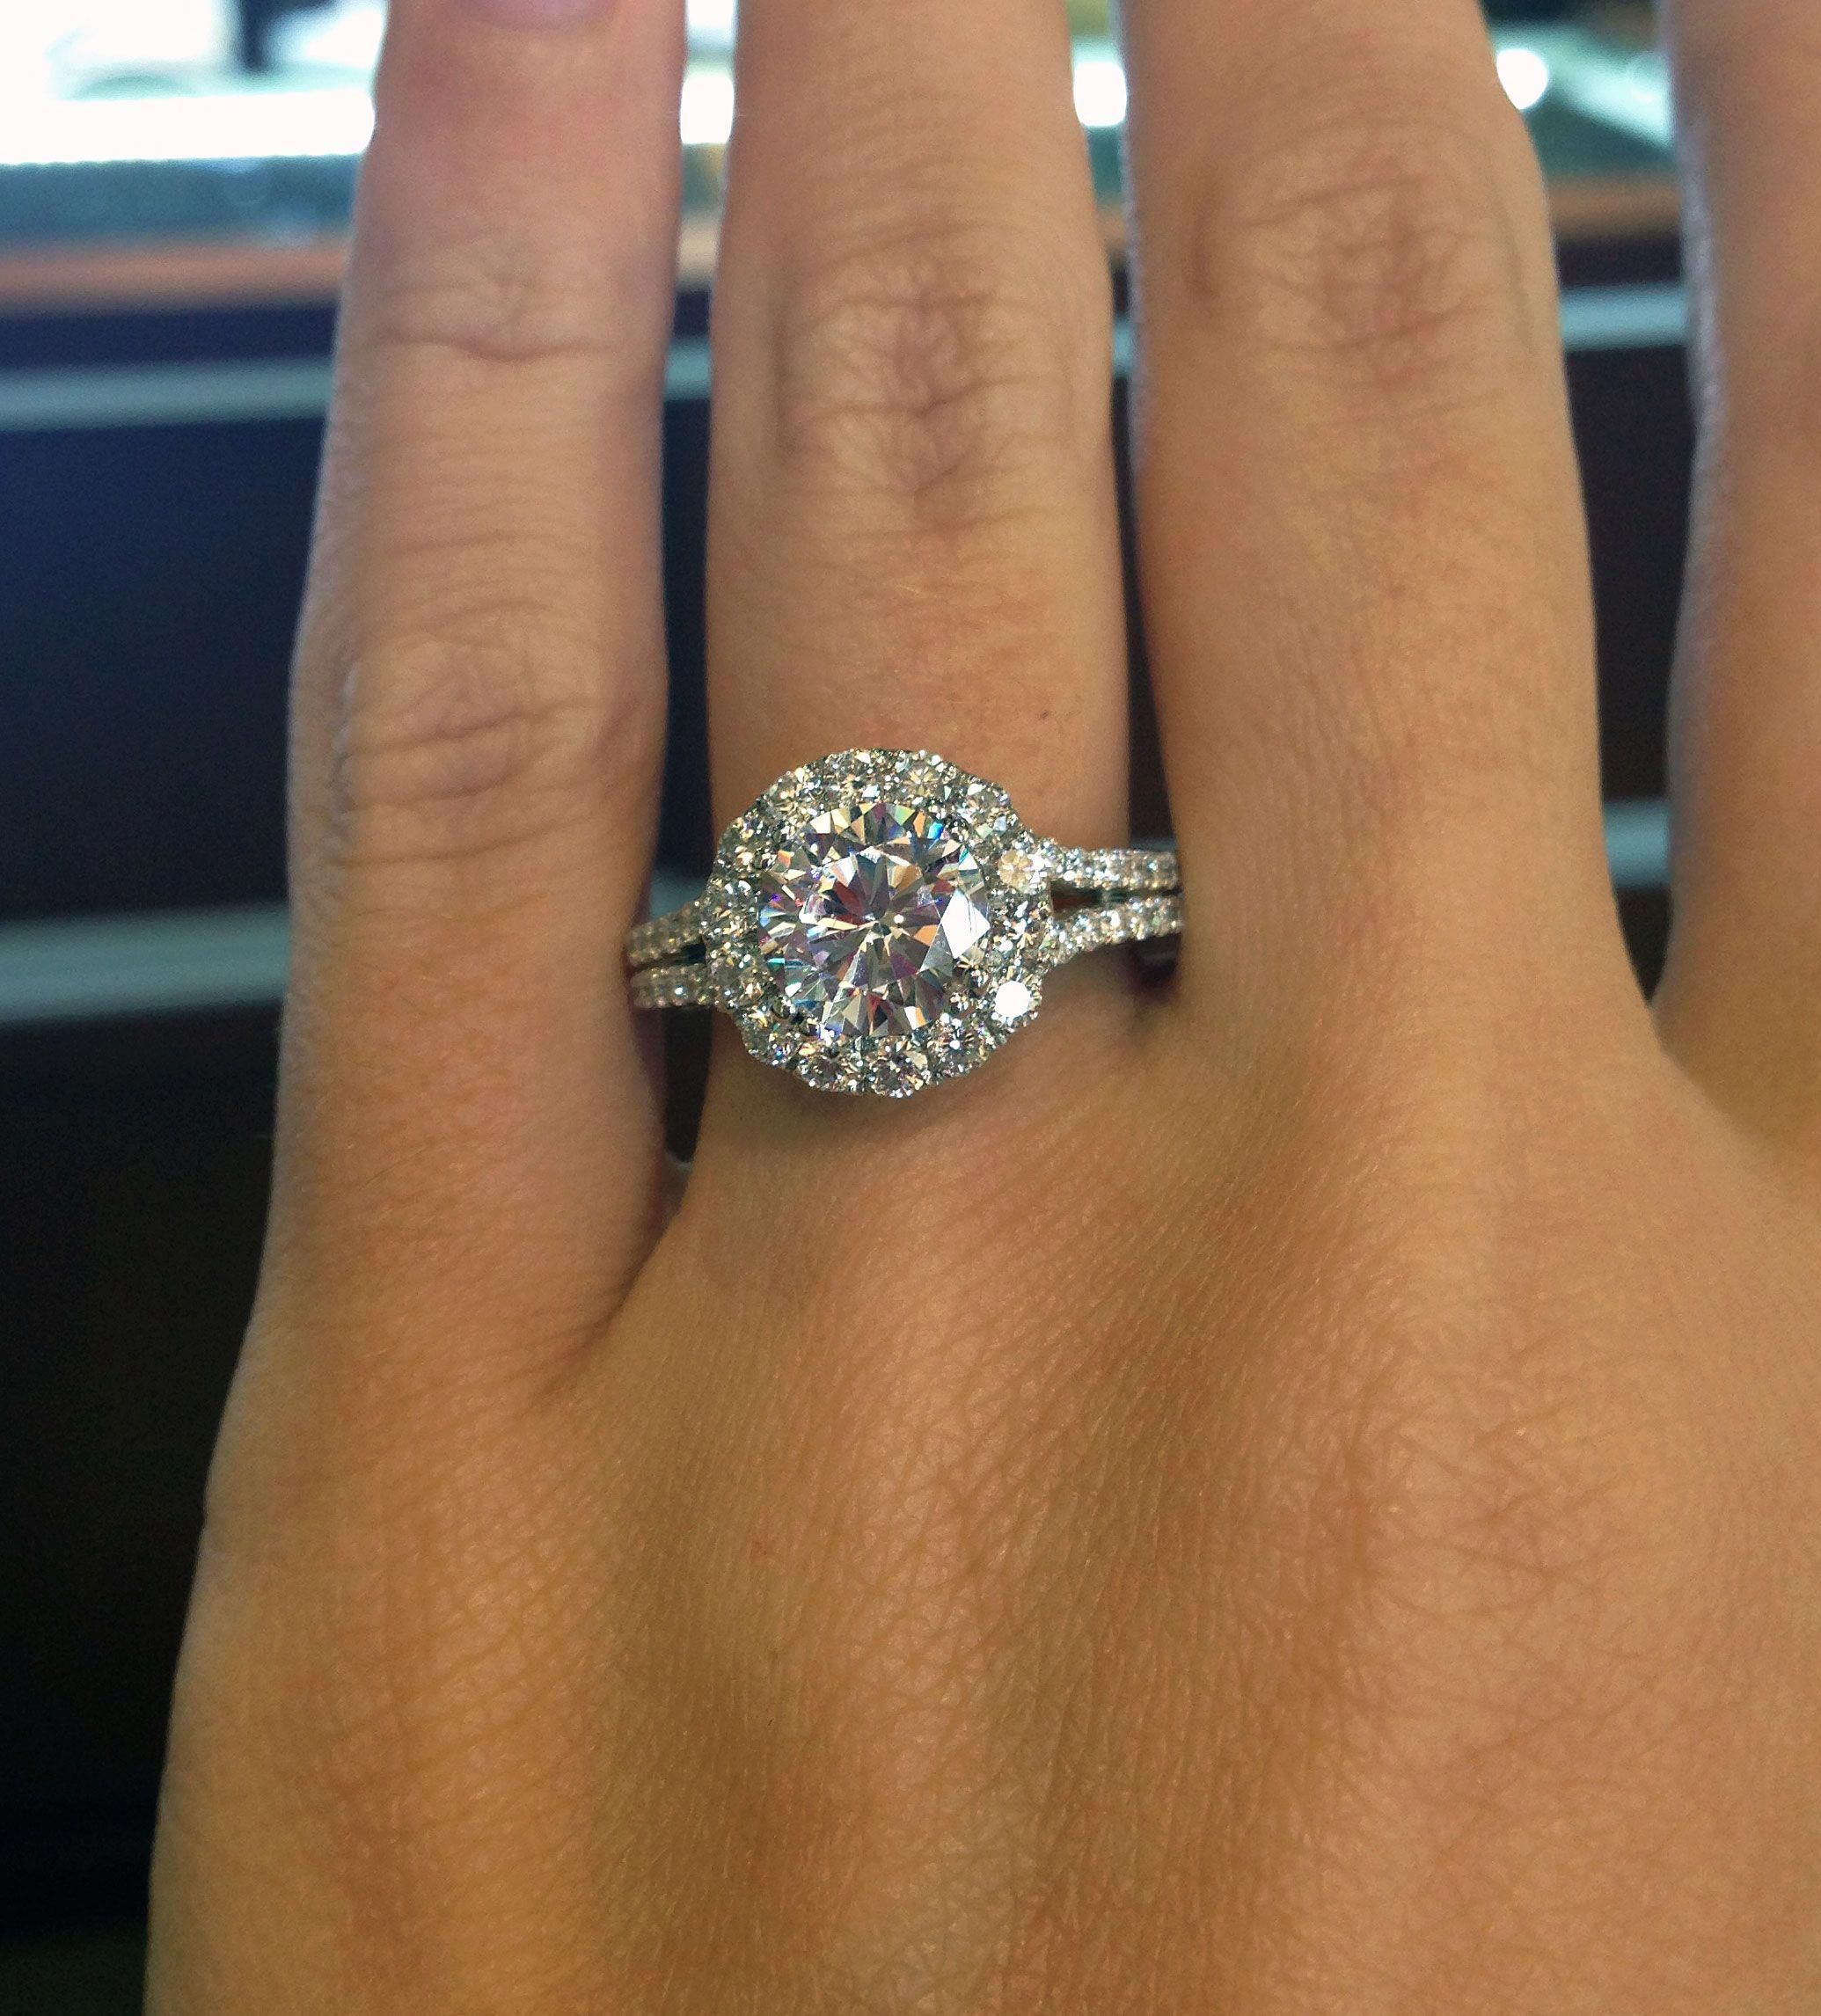 Solitaire Diamond Rings On Sale Right Now